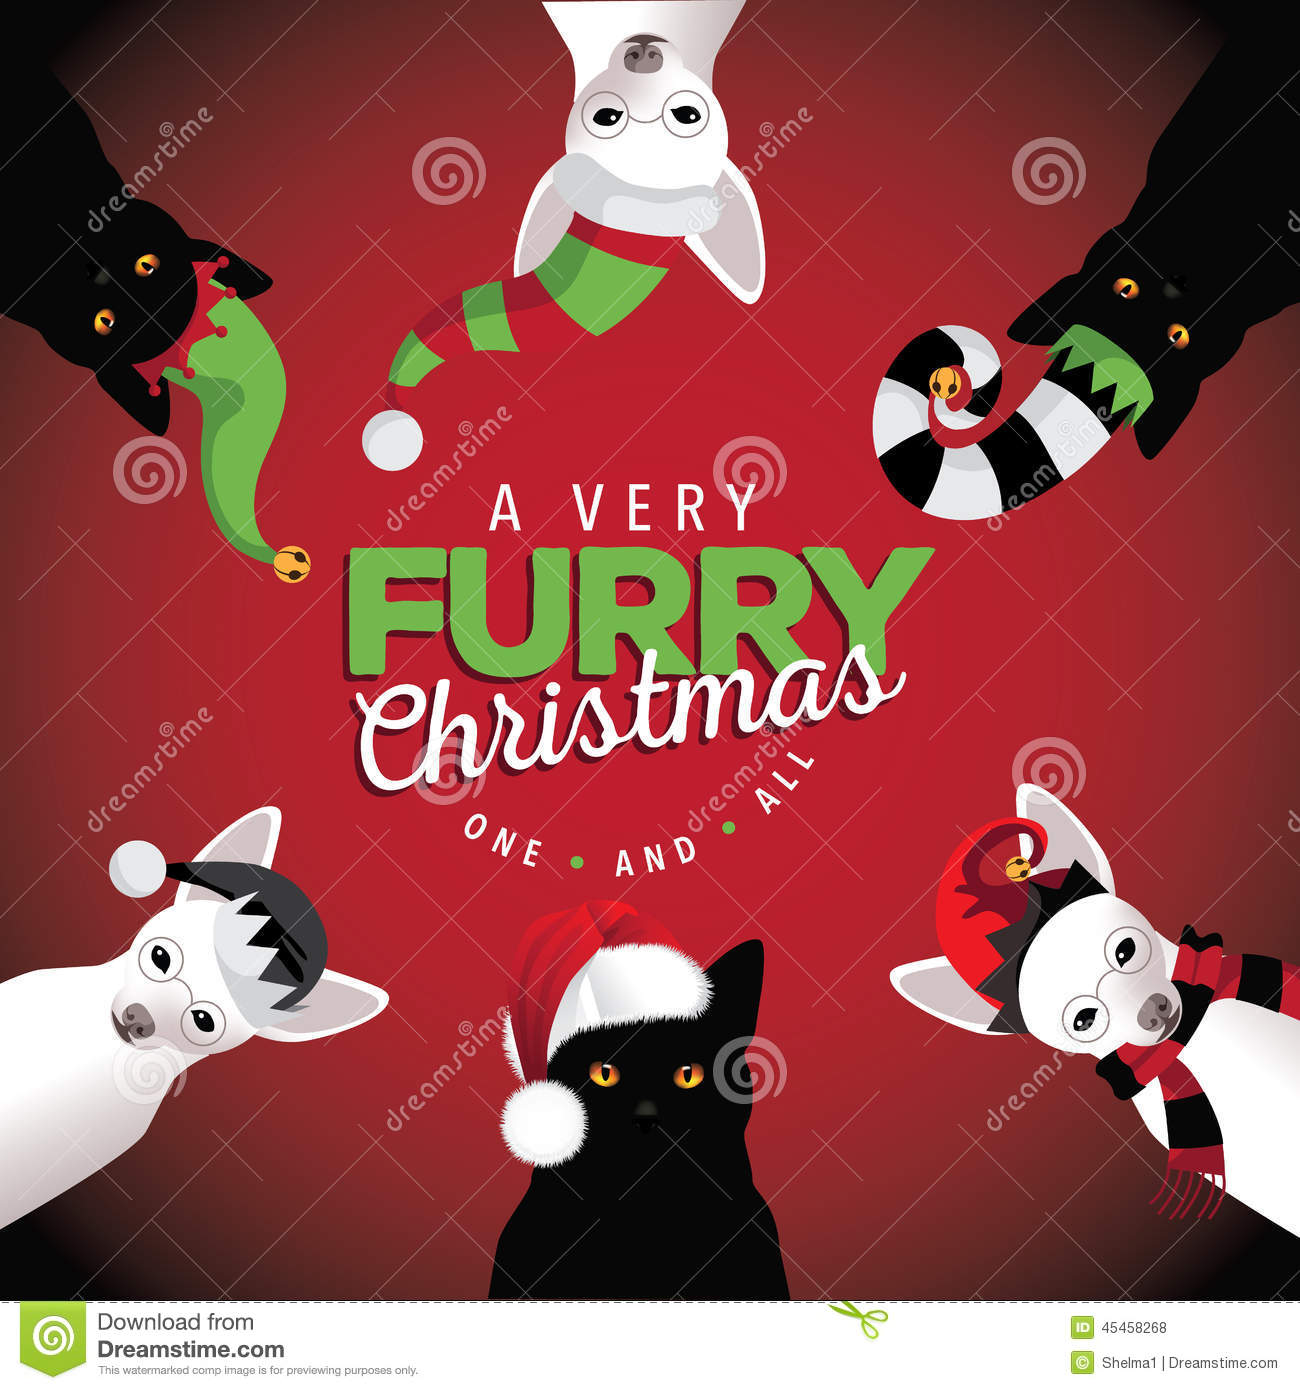 very furry christmas dogs and cats - Christmas Furry